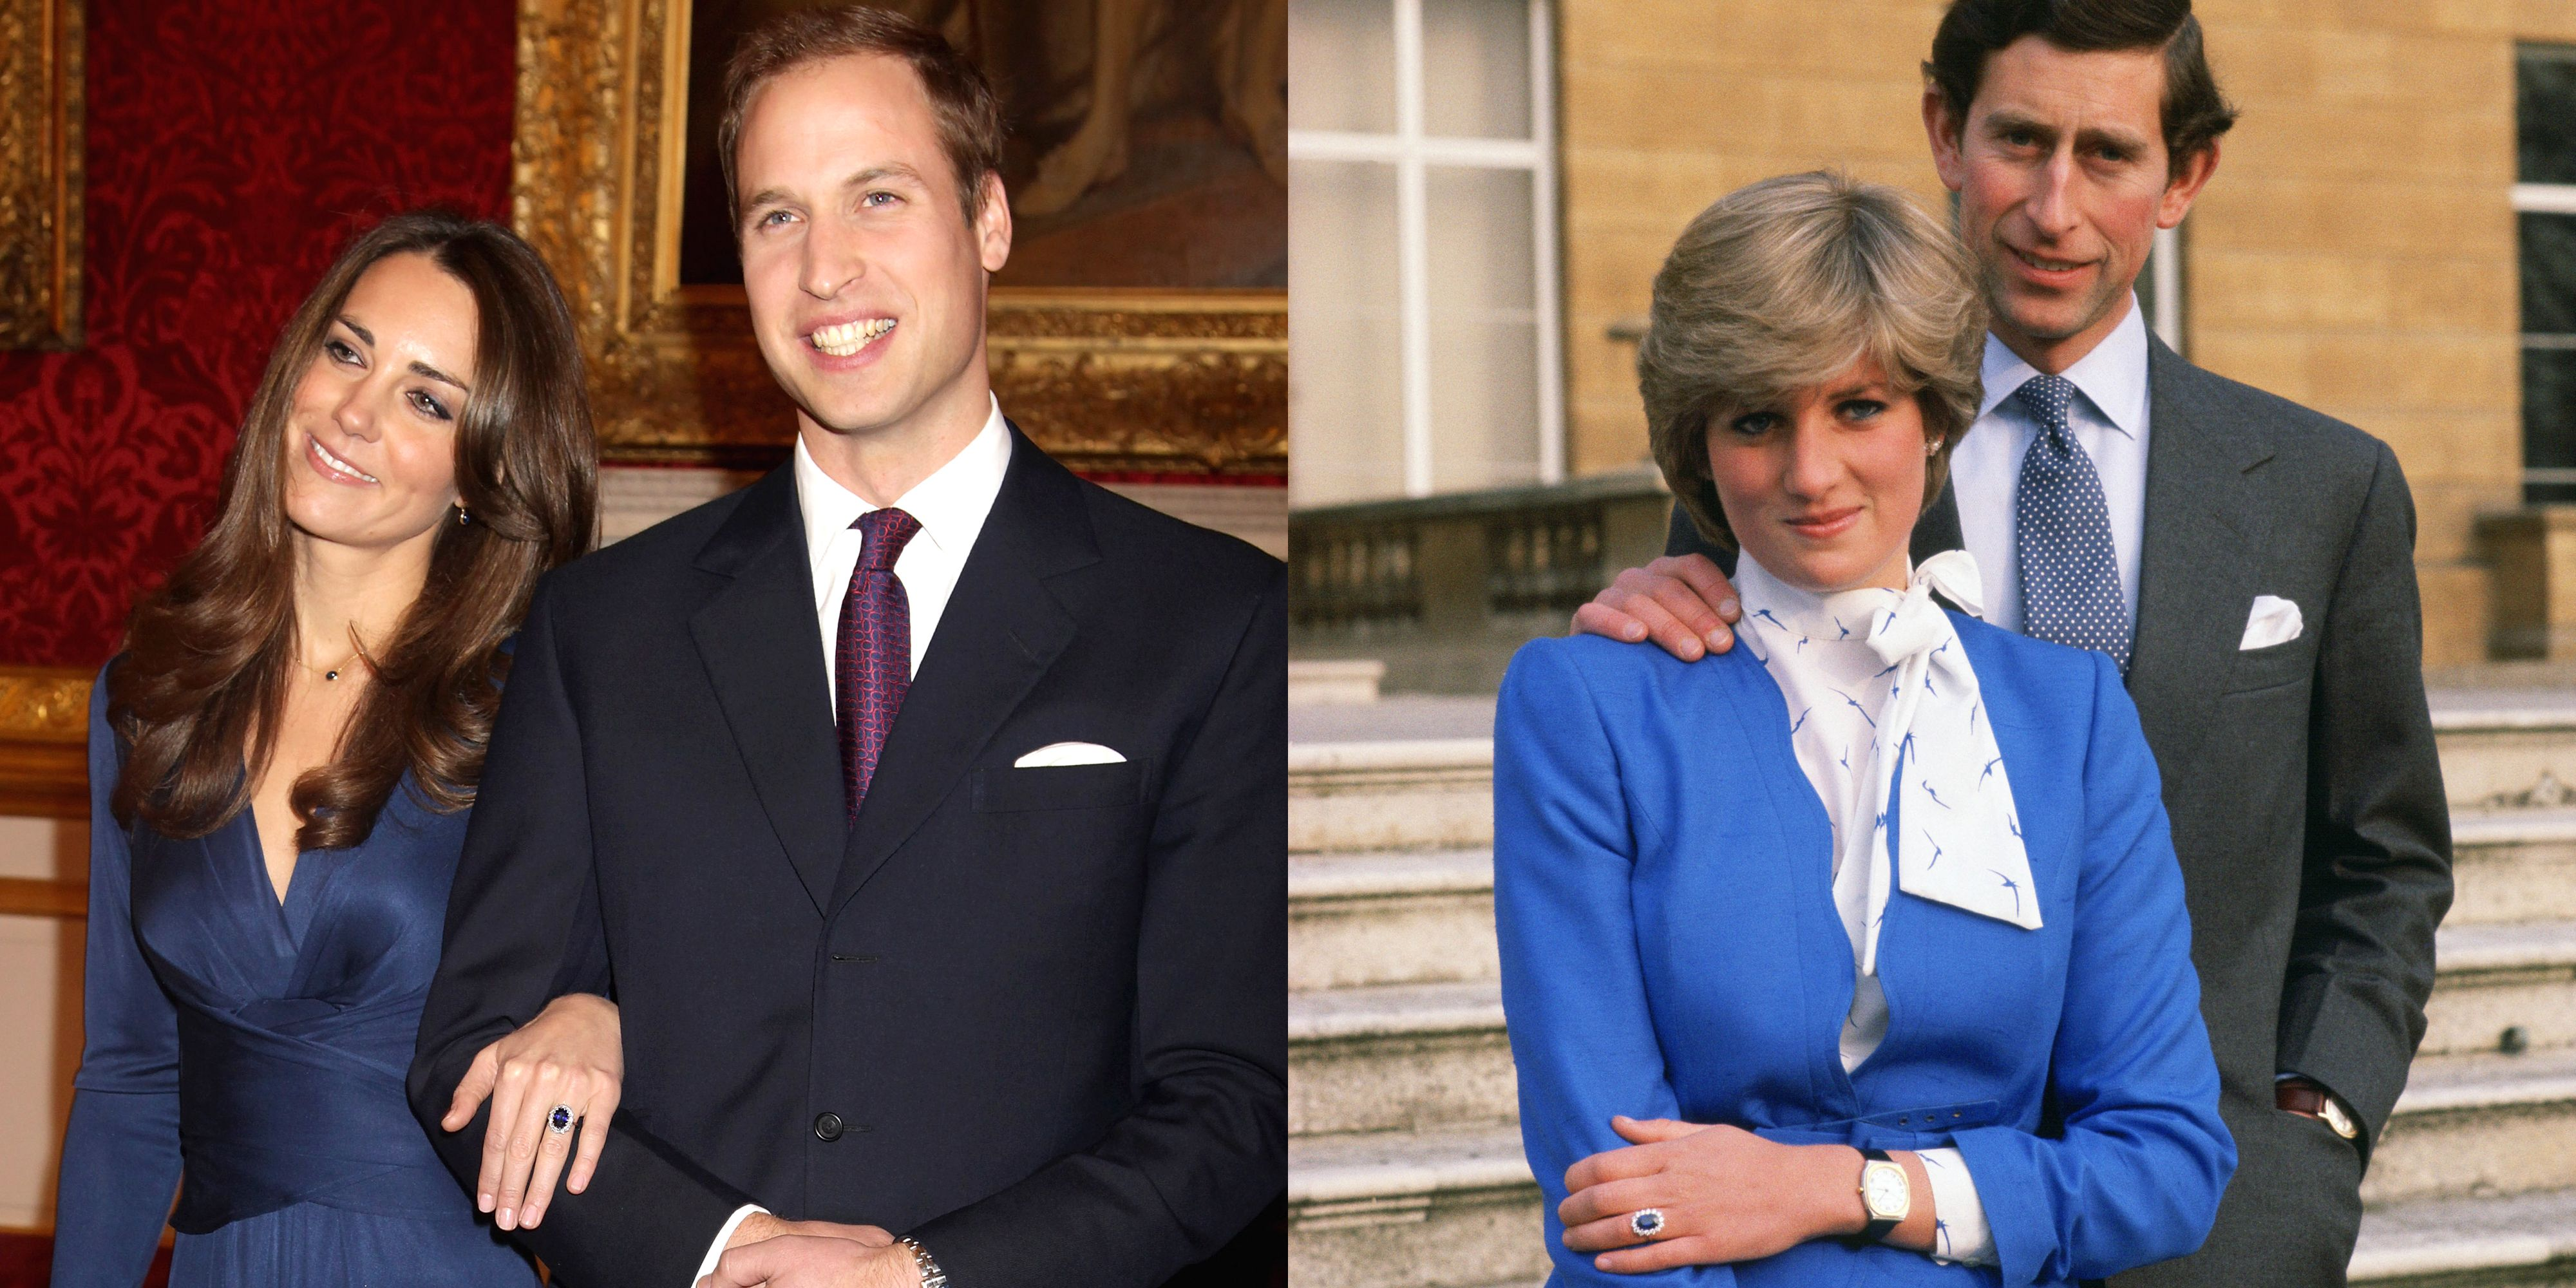 "<p>As you're probably well-aware, Kate's engagement ring once belonged to Princess Diana, and features fourteen diamonds surrounding a twelve carat sapphire. Apparently, Prince Charles allowed his sons to pick a memento from Diana's collection when she died—and it was actually Harry who picked the ring, while William <a href=""http://www.vanityfair.com/news/2003/09/princes-private-world-200309"" target=""_blank"" data-saferedirecturl=""https://www.google.com/url?hl=en&q=http://www.vanityfair.com/news/2003/09/princes-private-world-200309&source=gmail&ust=1499790911007000&usg=AFQjCNE-XfyQxrD0X2L4Qdtb27zML02lzg"">chose</a> his mother's Cartier watch. They switched items when Will decided to propose to Kate. 'It is very special to me,"" he said. ""It was my way of making sure my mother didn't miss out on today, and the excitement, and the fact we are going to spend the rest of our lives together.""</p>"